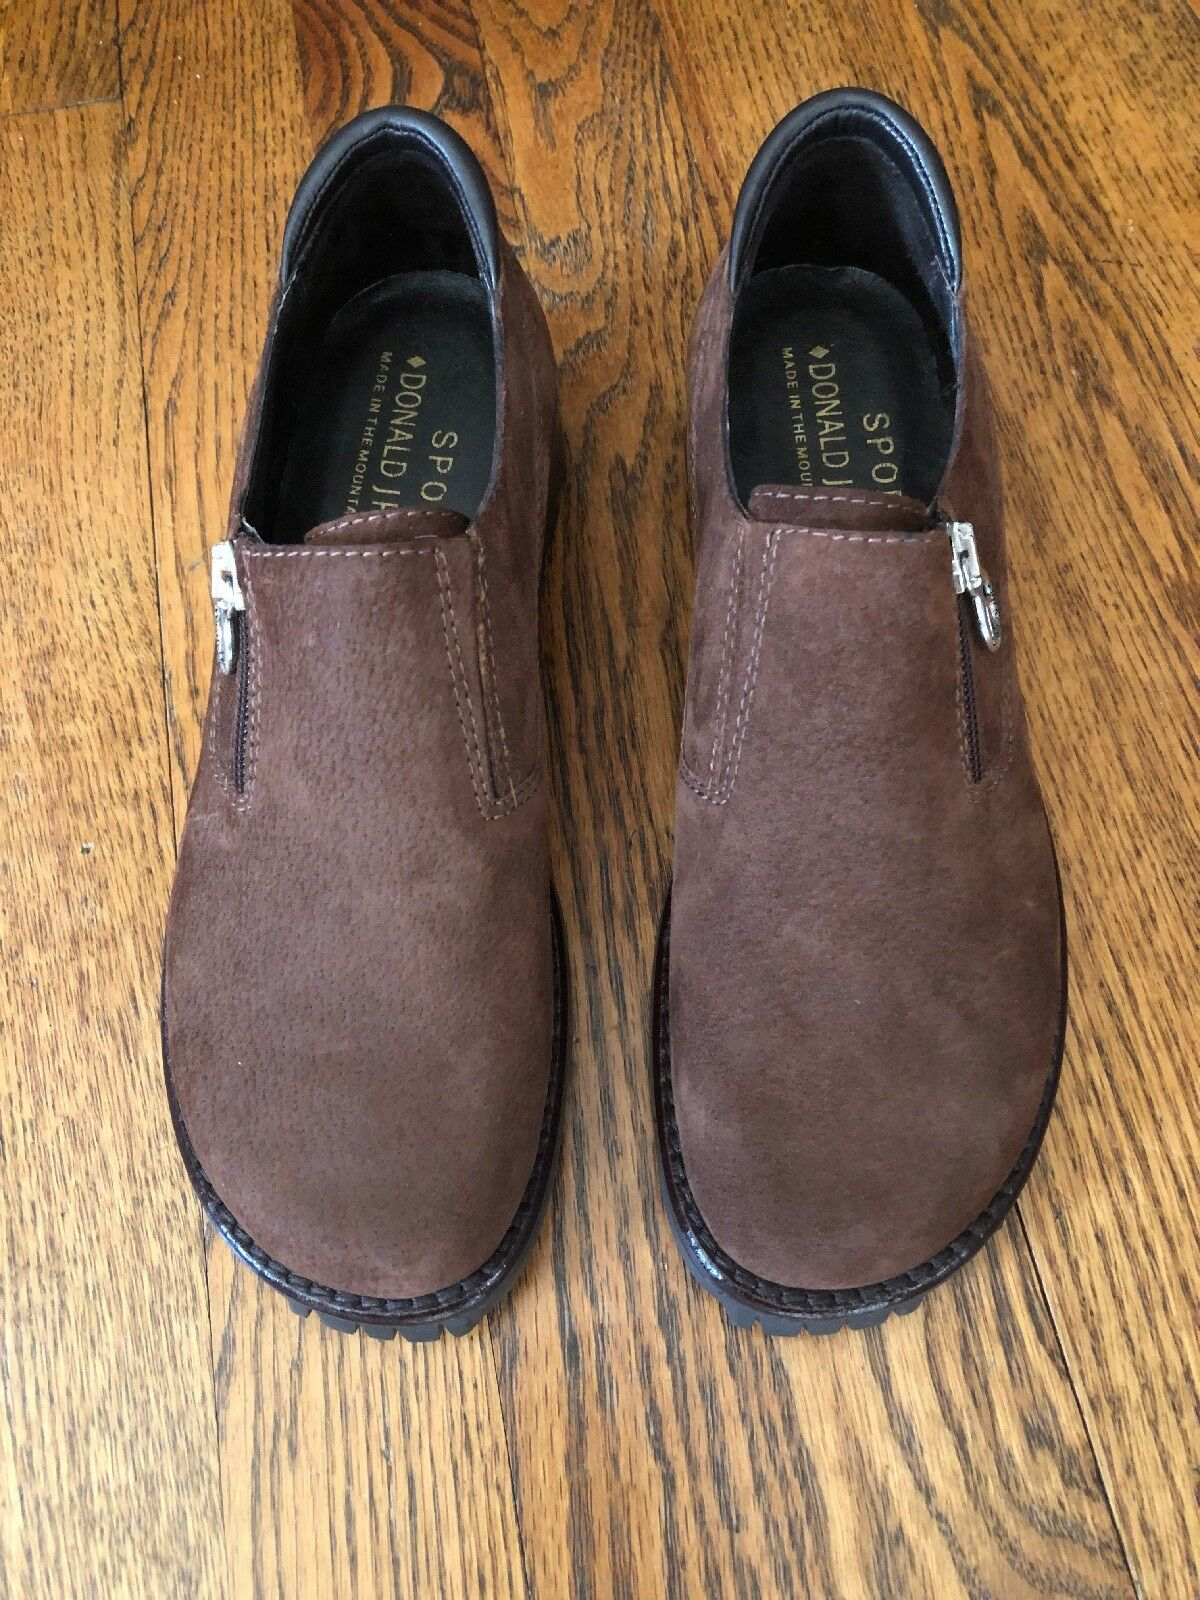 Donald Pliner Sport Uagain 6.5 Marronee Suede NWT Made in